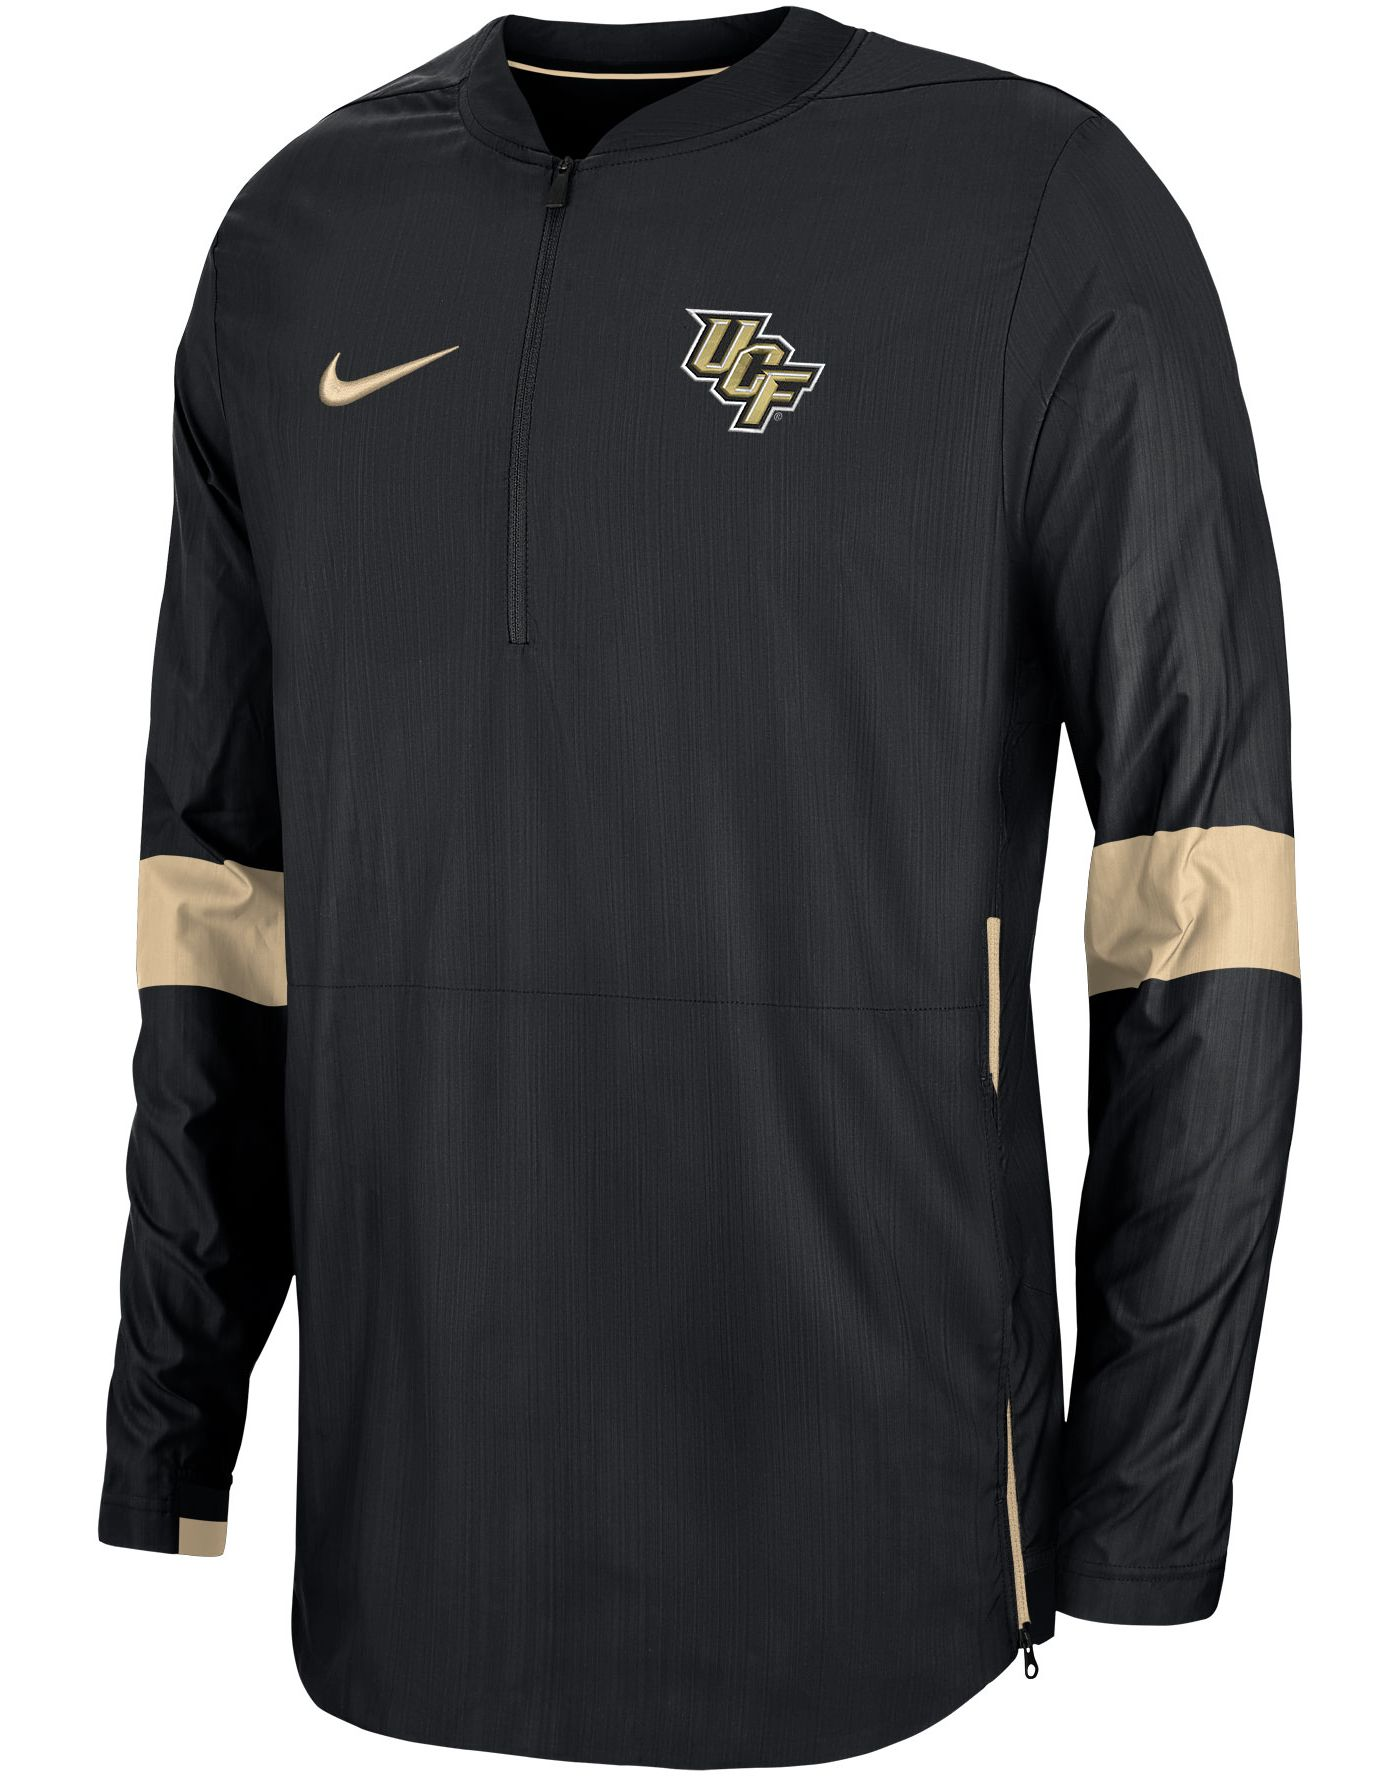 Nike Men's UCF Knights Lockdown Half-Zip Football Black Jacket